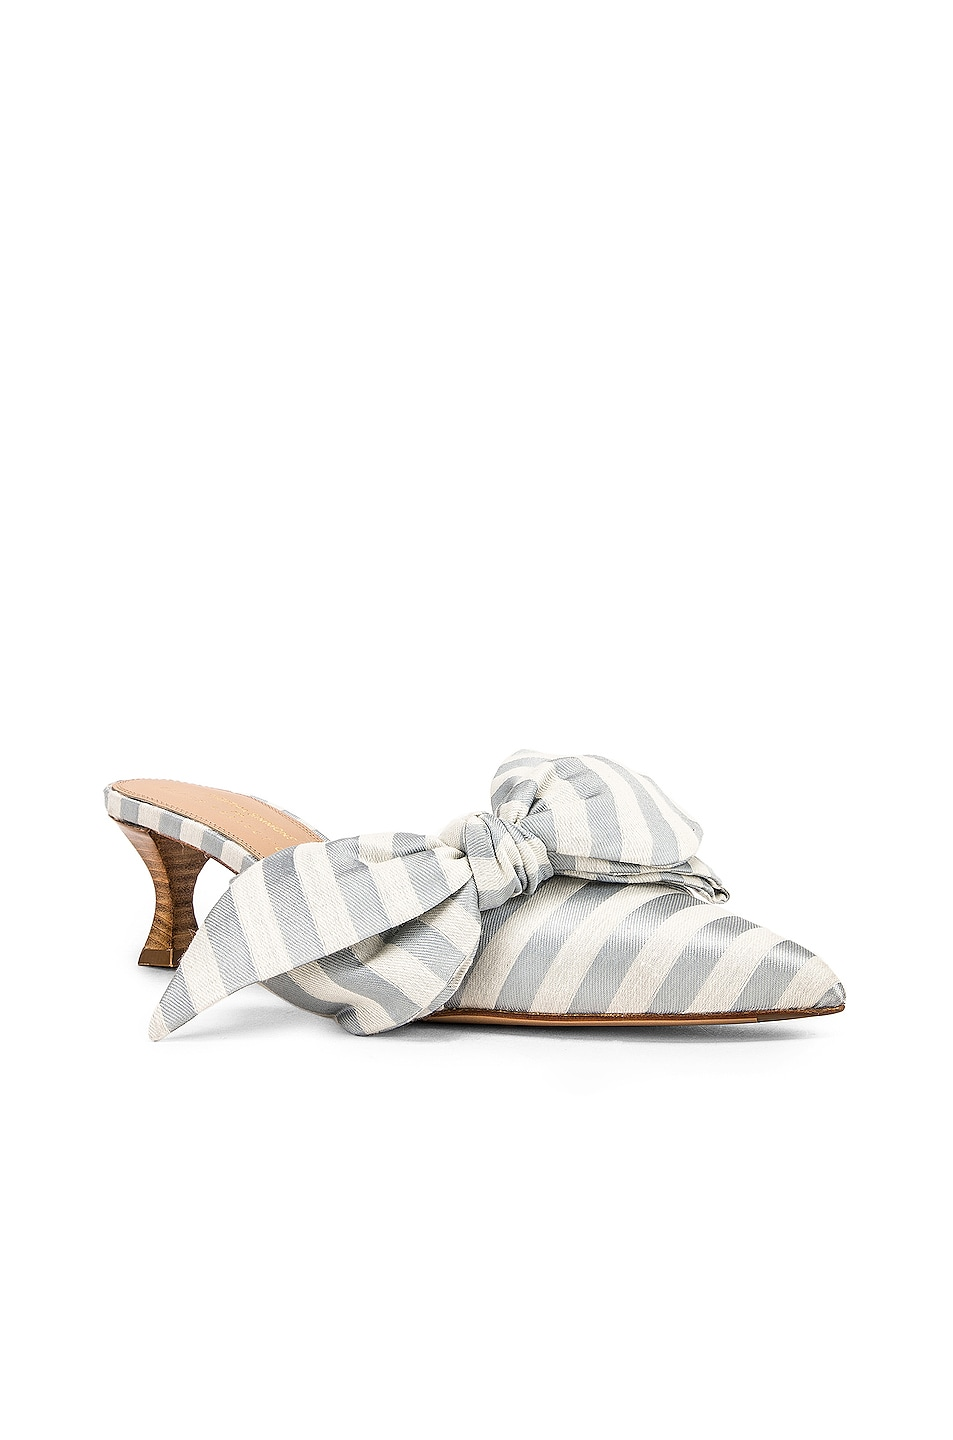 Image 2 of Brock Collection Tess Stripes Bow Heels in Light Blue & White